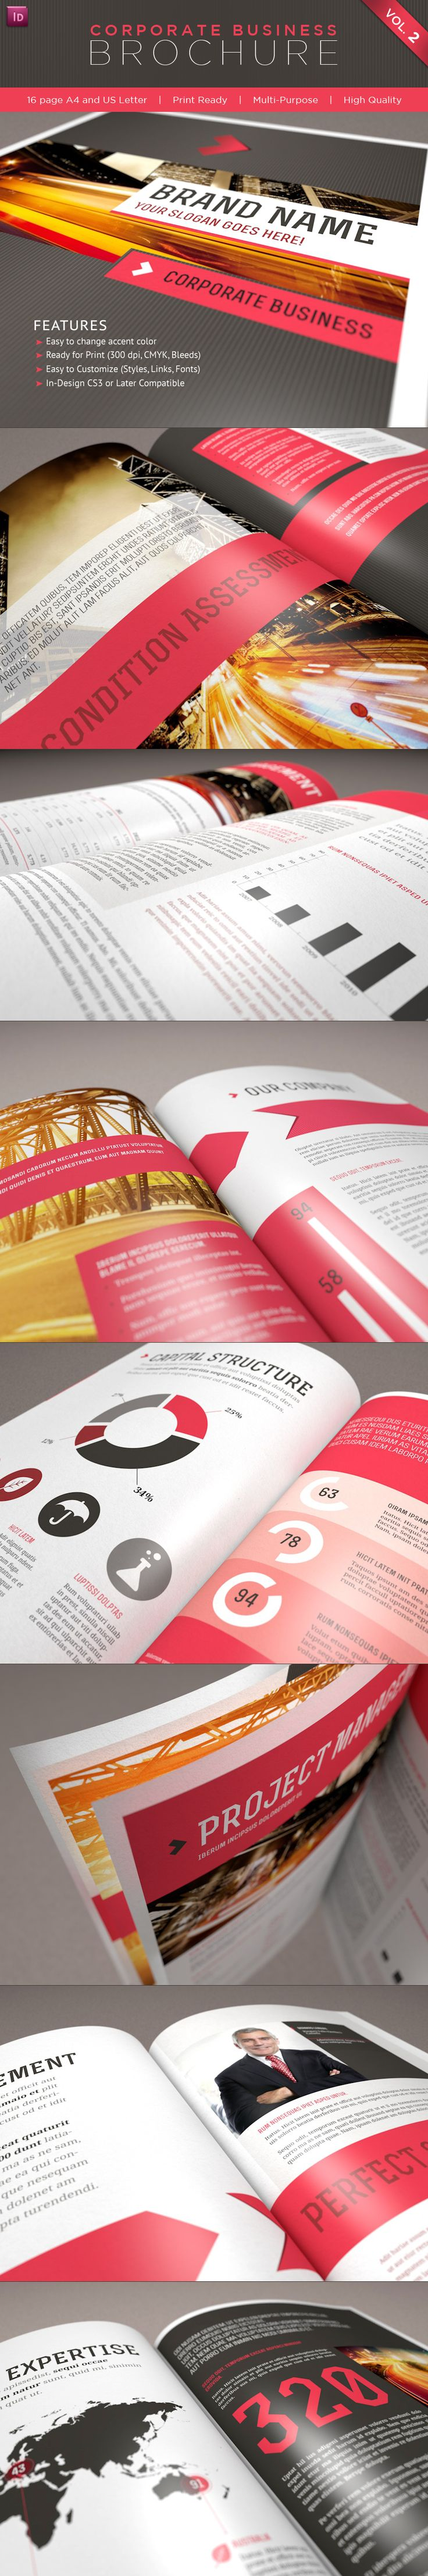 16 Page Business Brochure Template for InDesign - Letter size would work with MagCloud Standard product